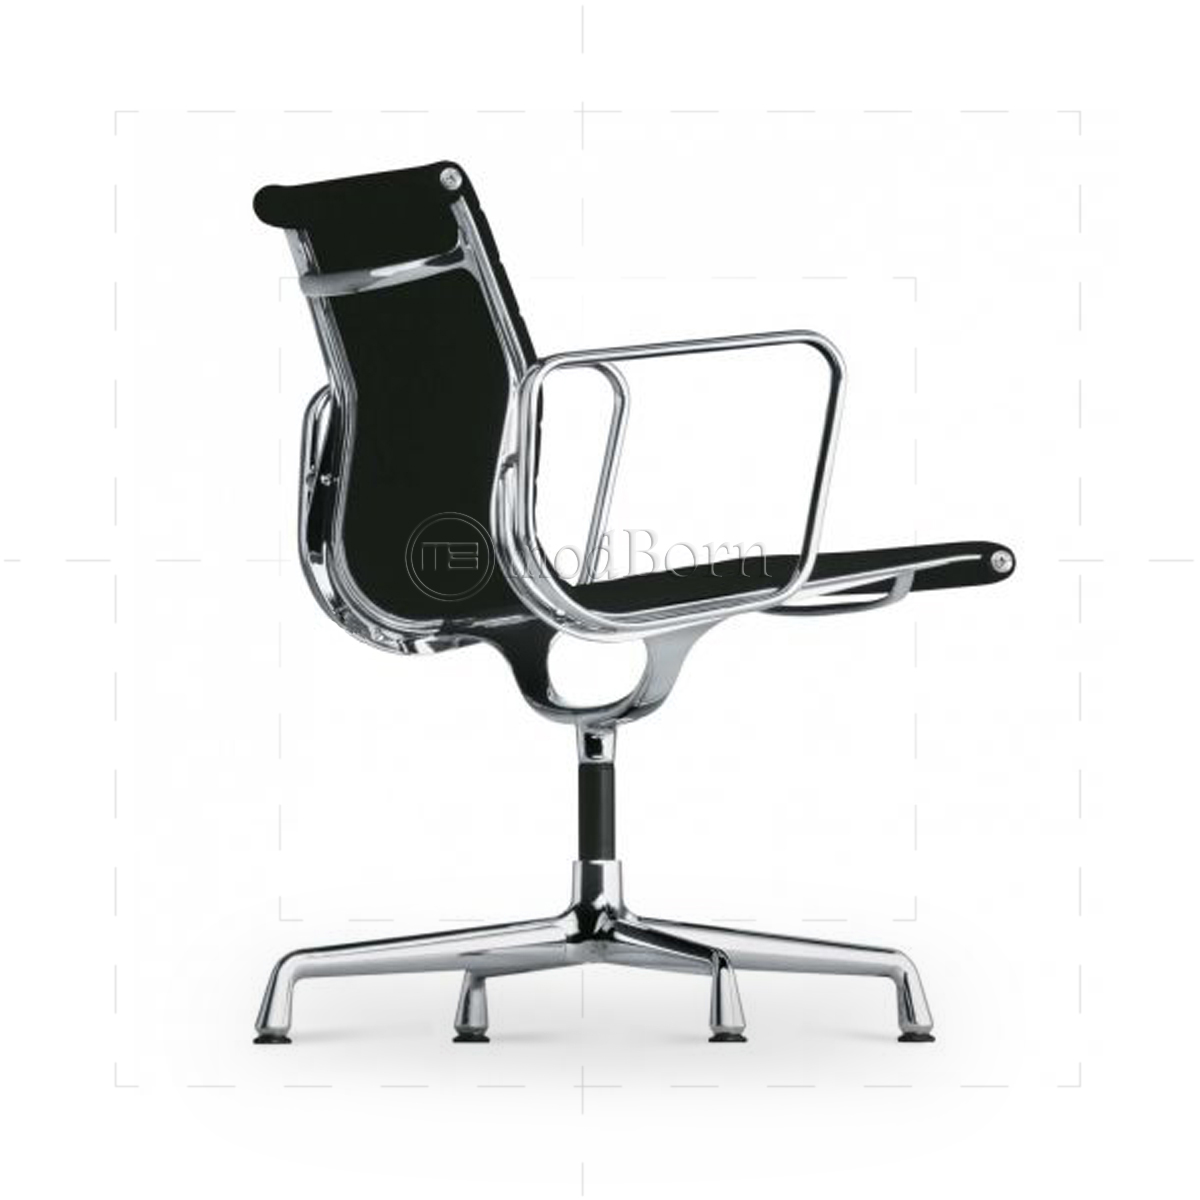 ea108 eames style office chair low back ribbed black leather. Black Bedroom Furniture Sets. Home Design Ideas